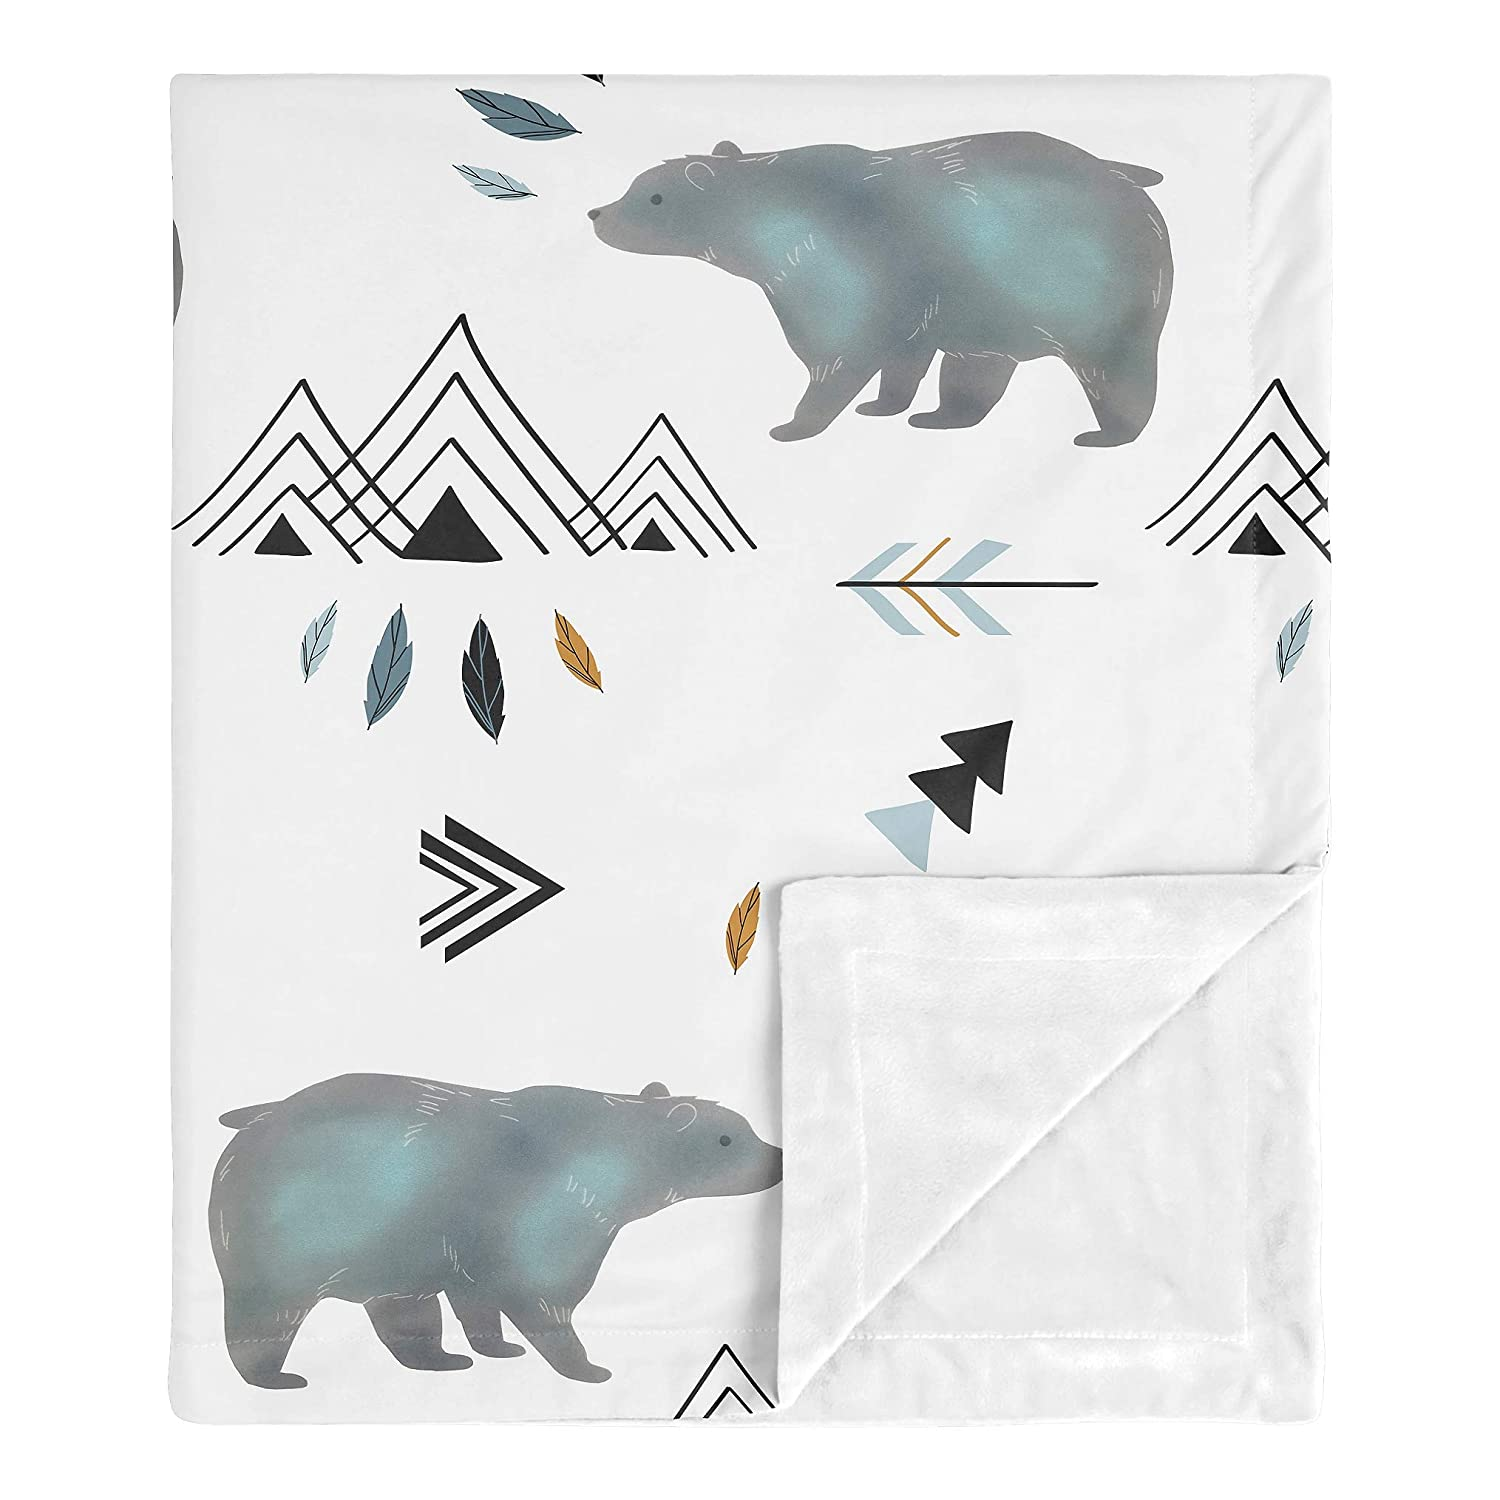 Sweet Jojo Designs Bear Mountain Watercolor Baby Boy Receiving Security Swaddle Blanket for Newborn or Toddler Nursery Car Seat Stroller Soft Minky - Slate Blue, Black and White